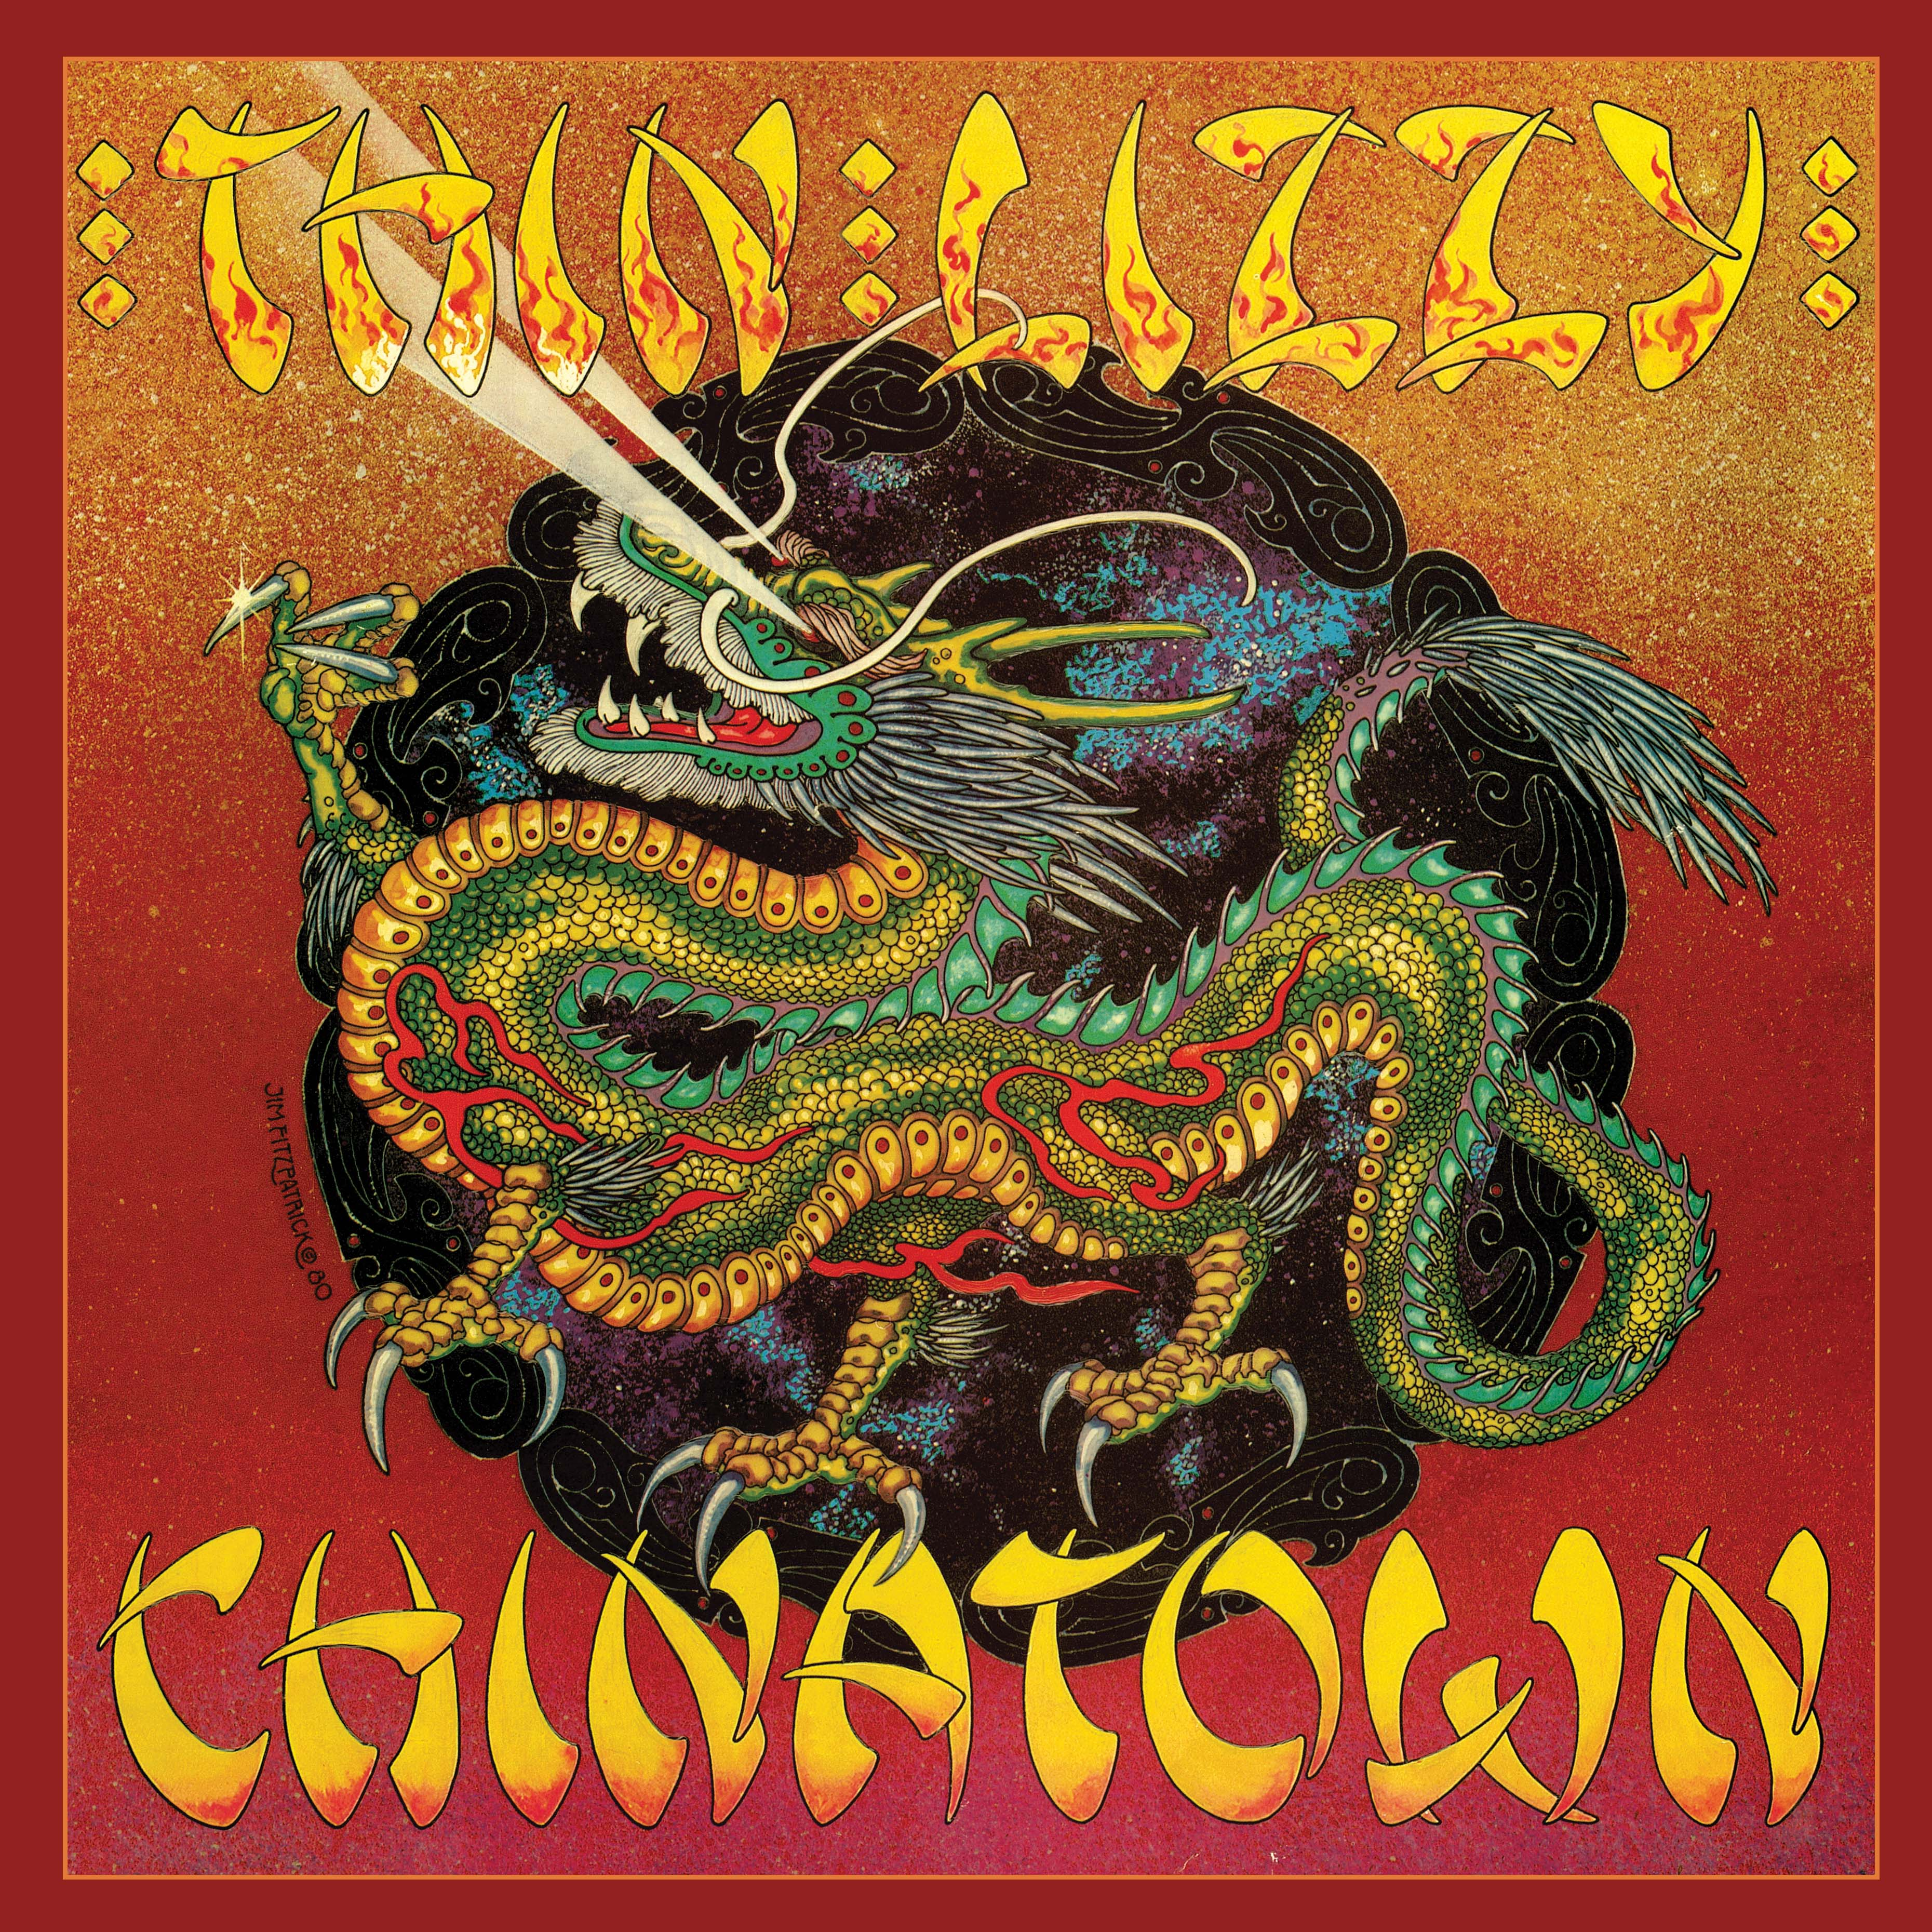 Thin Lizzy - Chinatown (RSD 2020 Drop Three) 2LP Vinyl Record Album